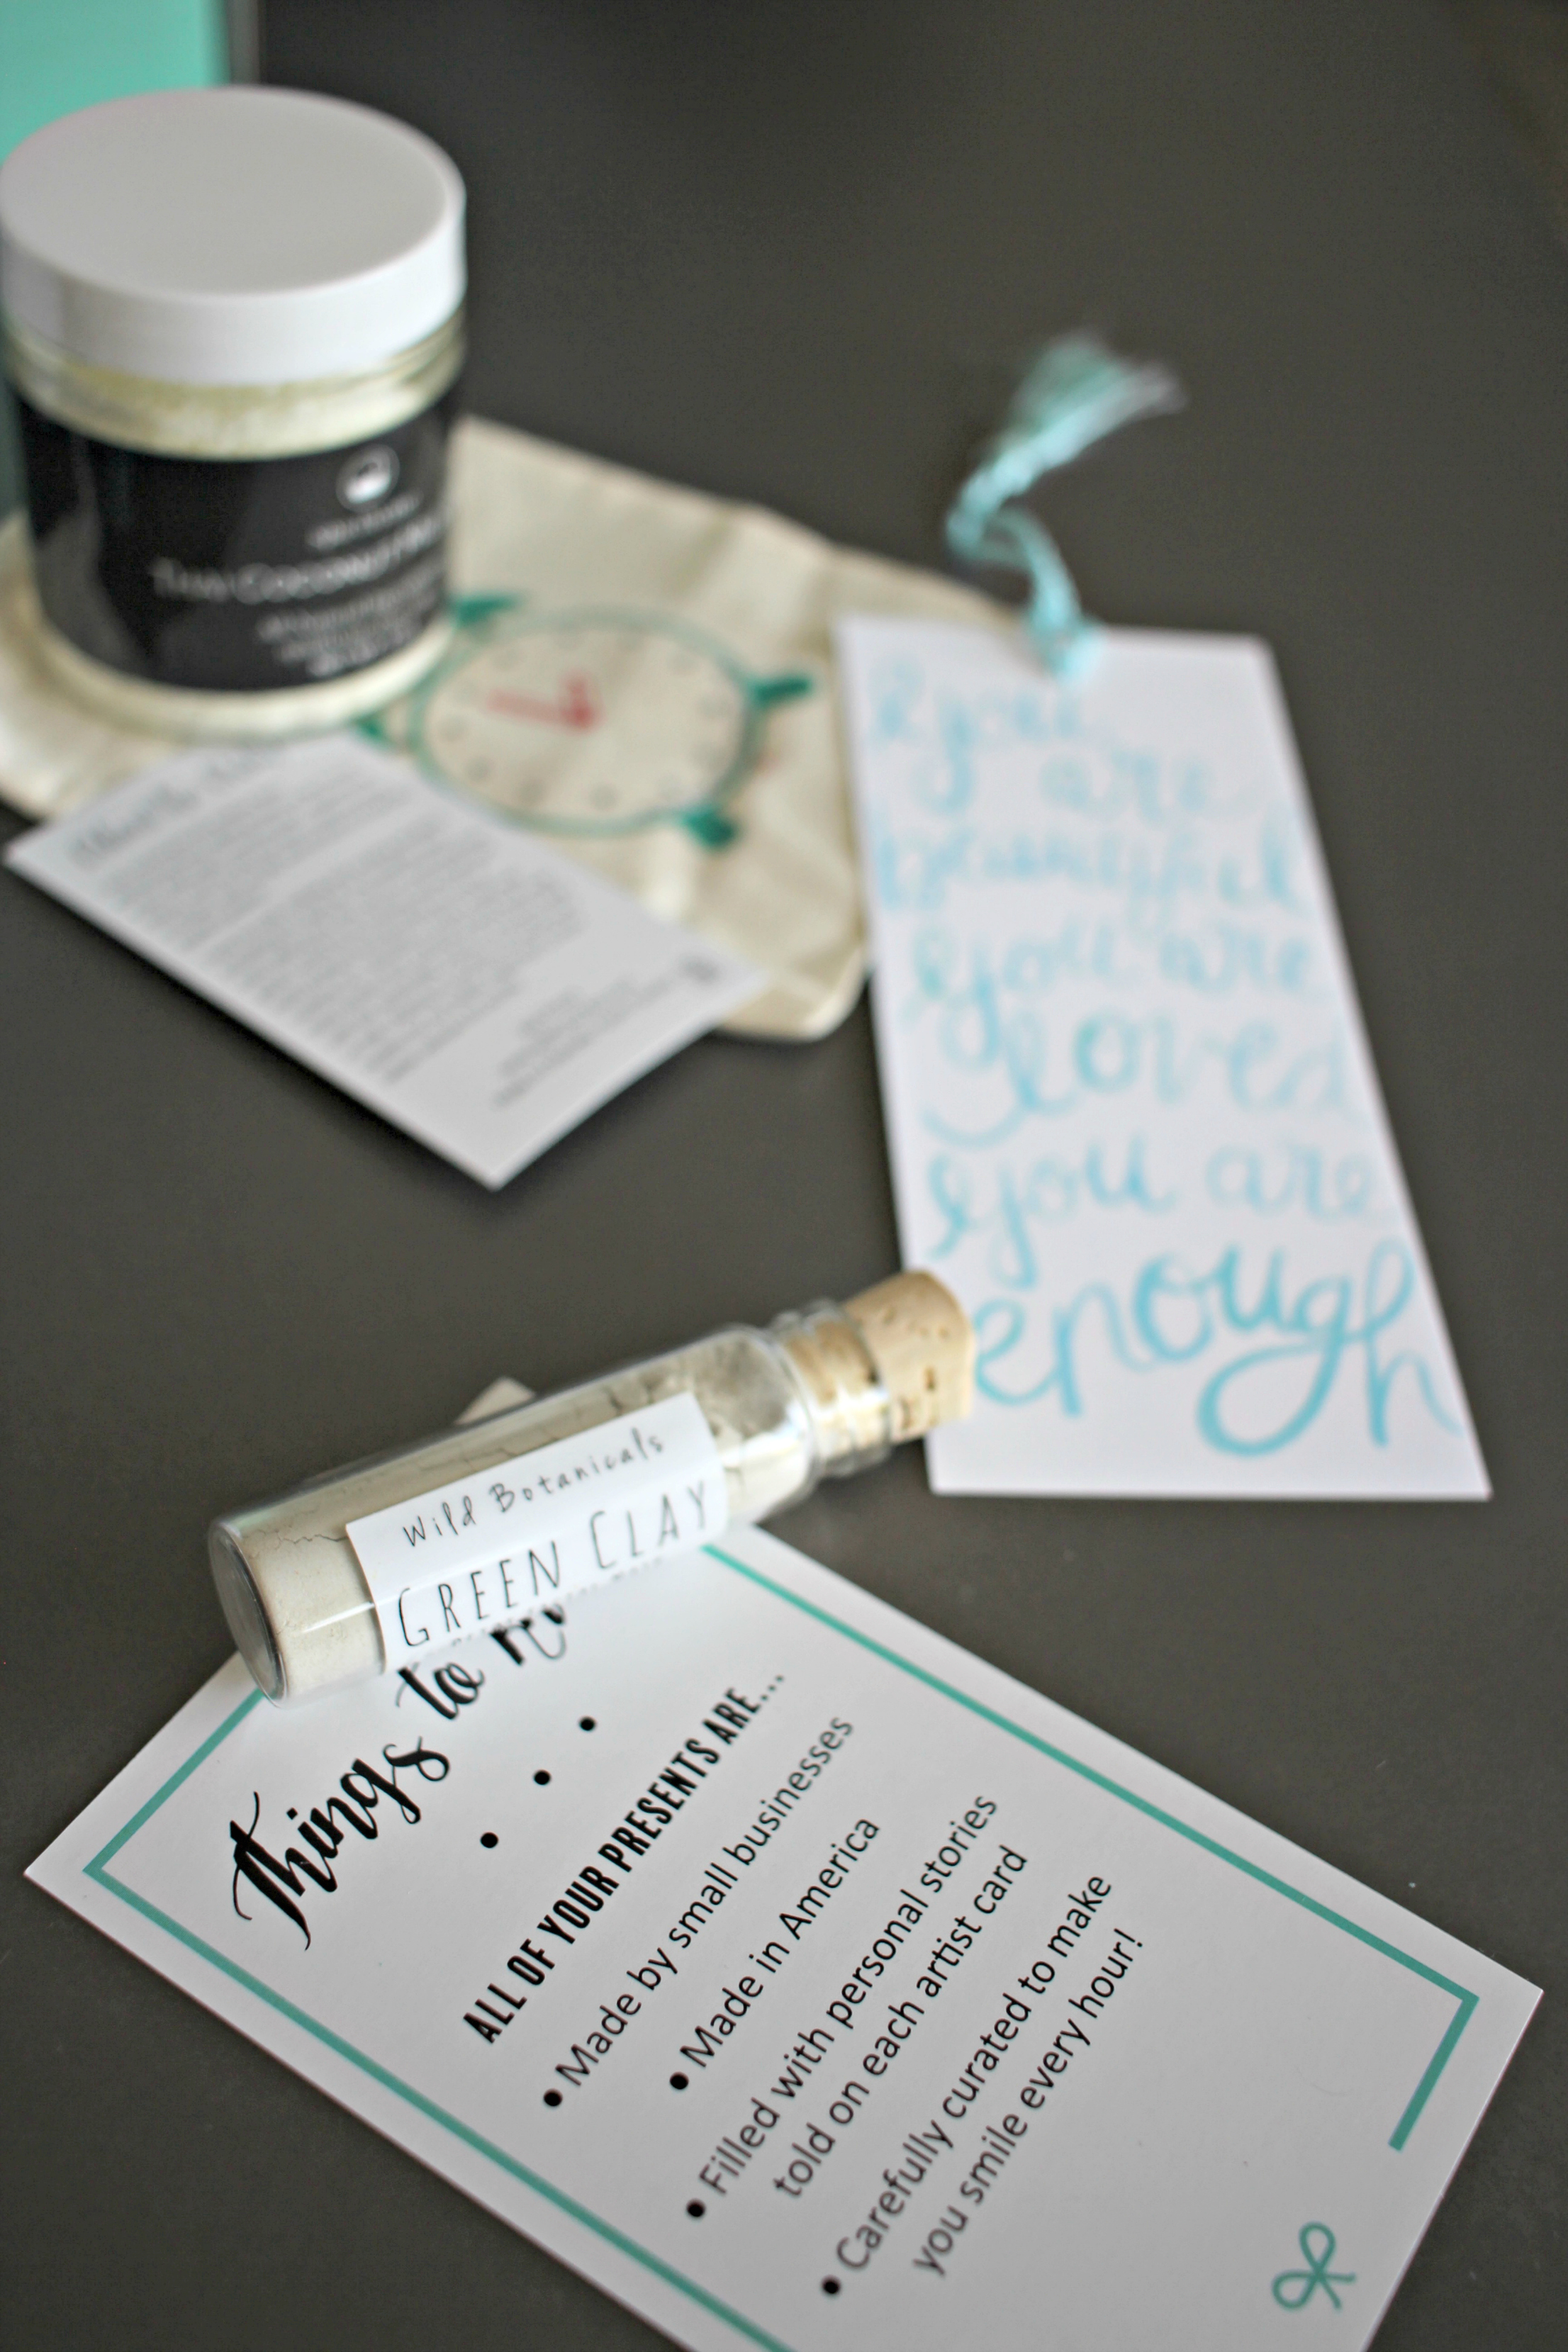 snail mail gift idea via Finding Beautiful Truth